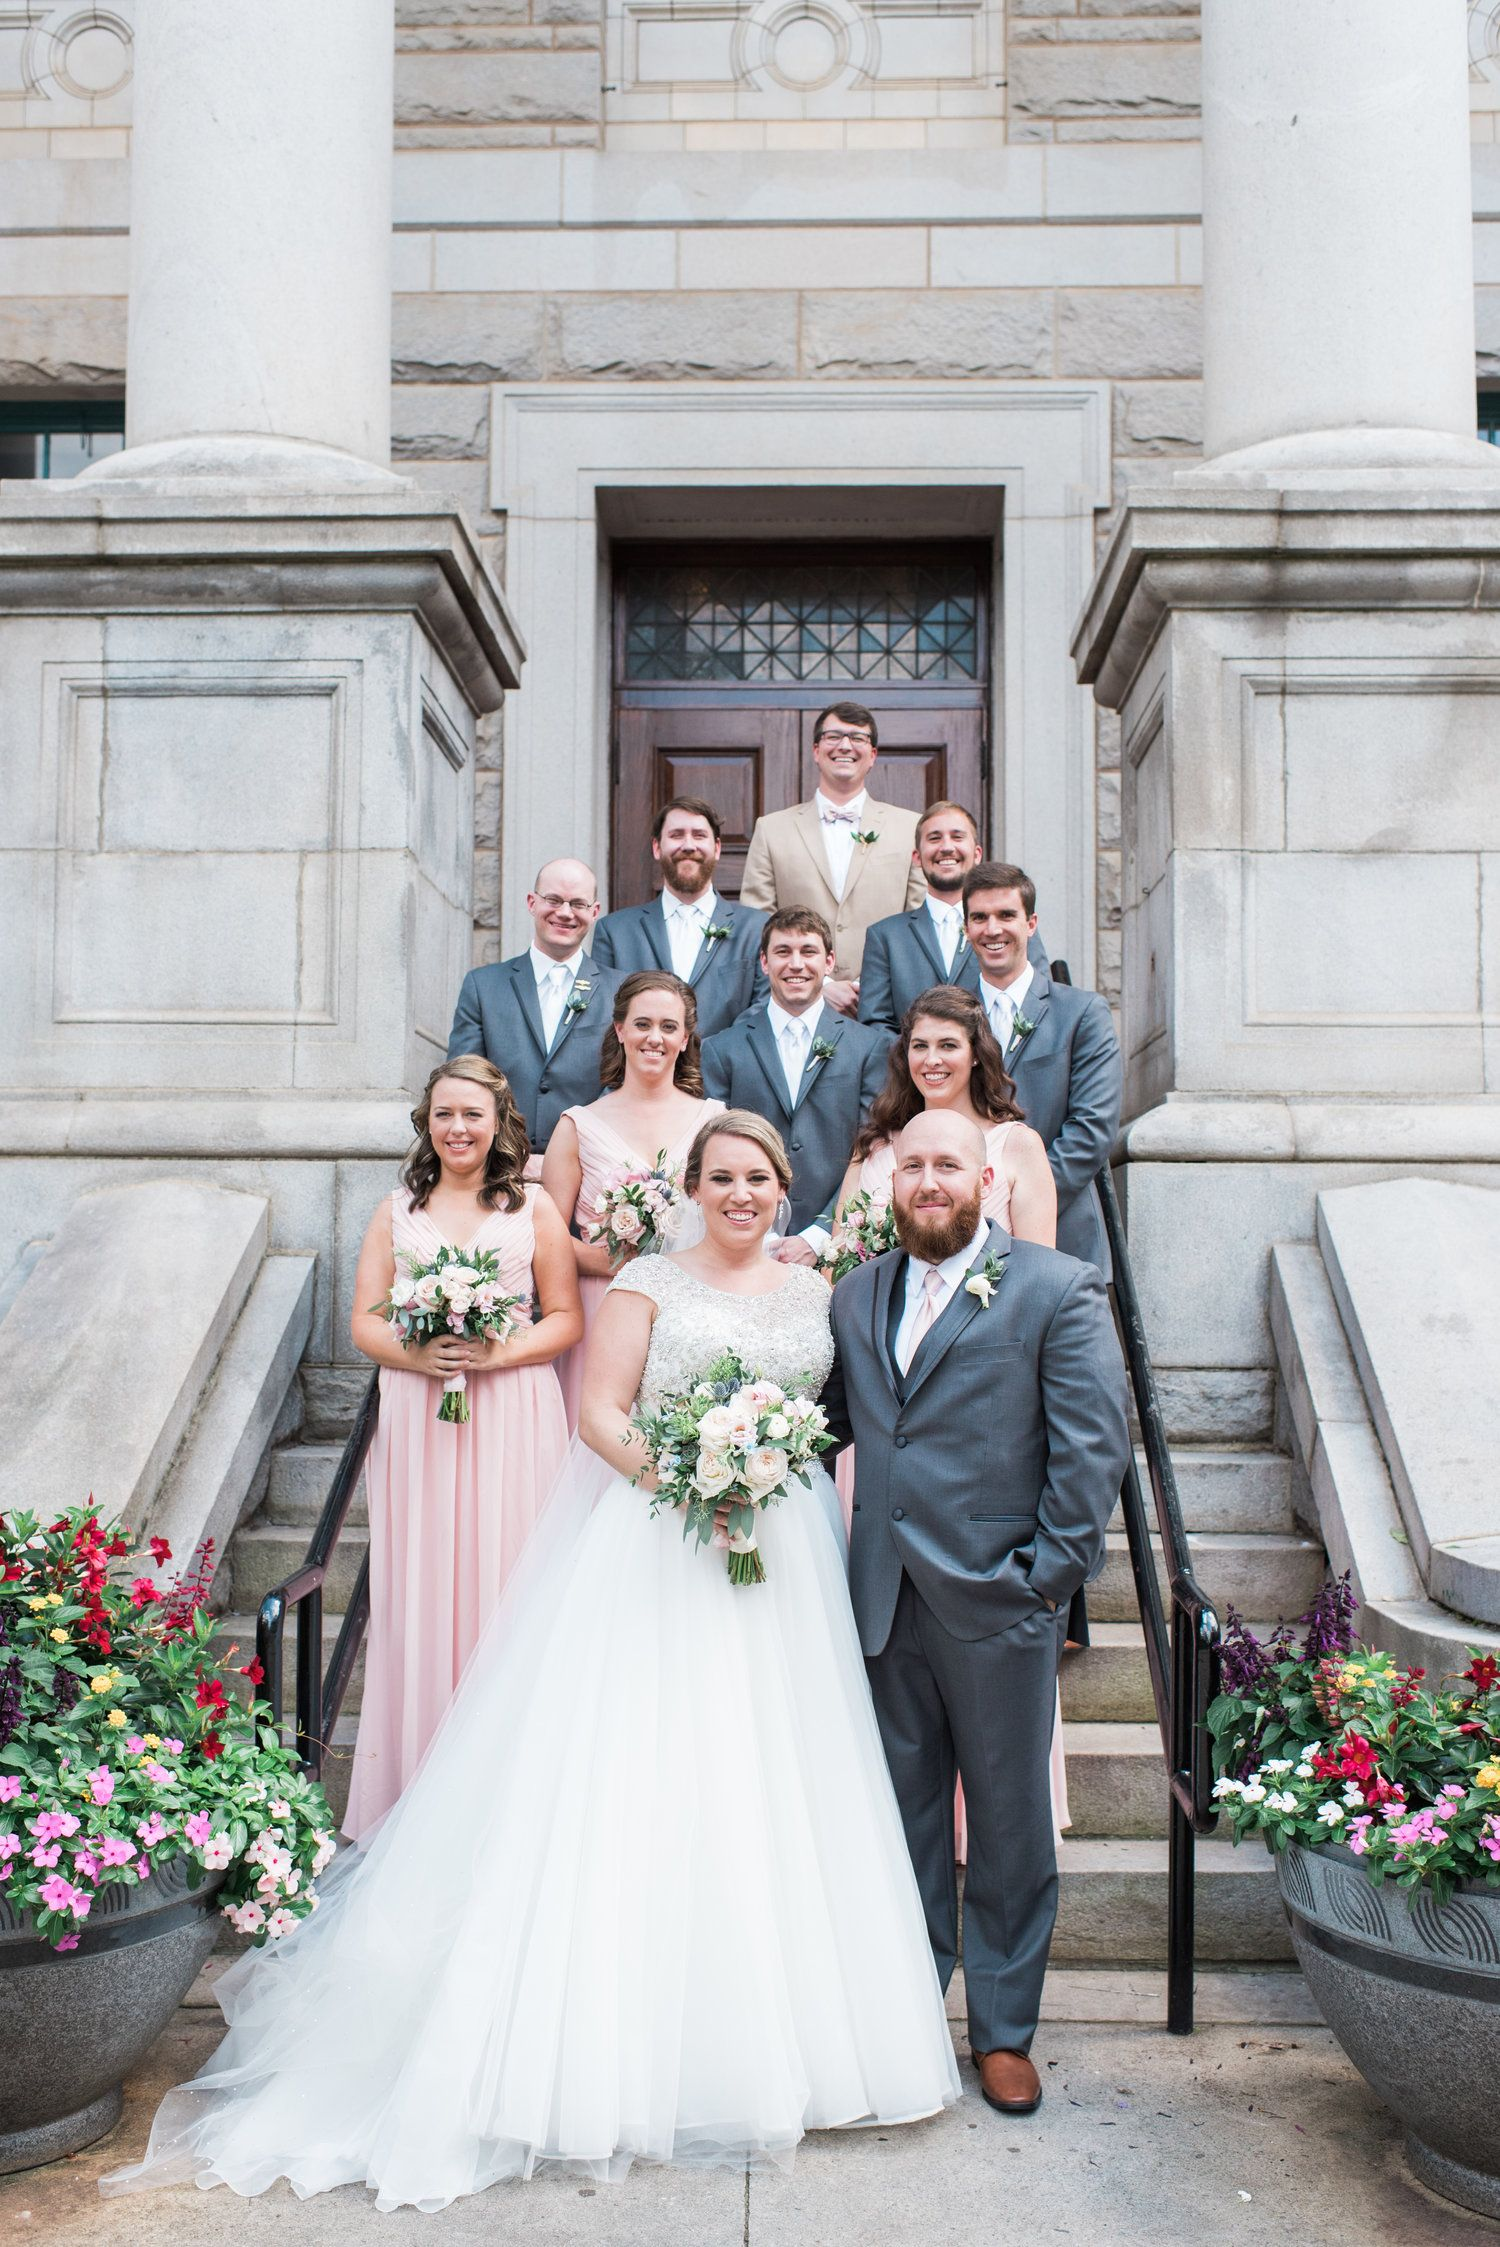 Mr Mrs Sullivan Historic Dekalb Courthouse Wedding Decatur Ga Holly Von Lanken Photography Courthouse Wedding Wedding Wedding Photography